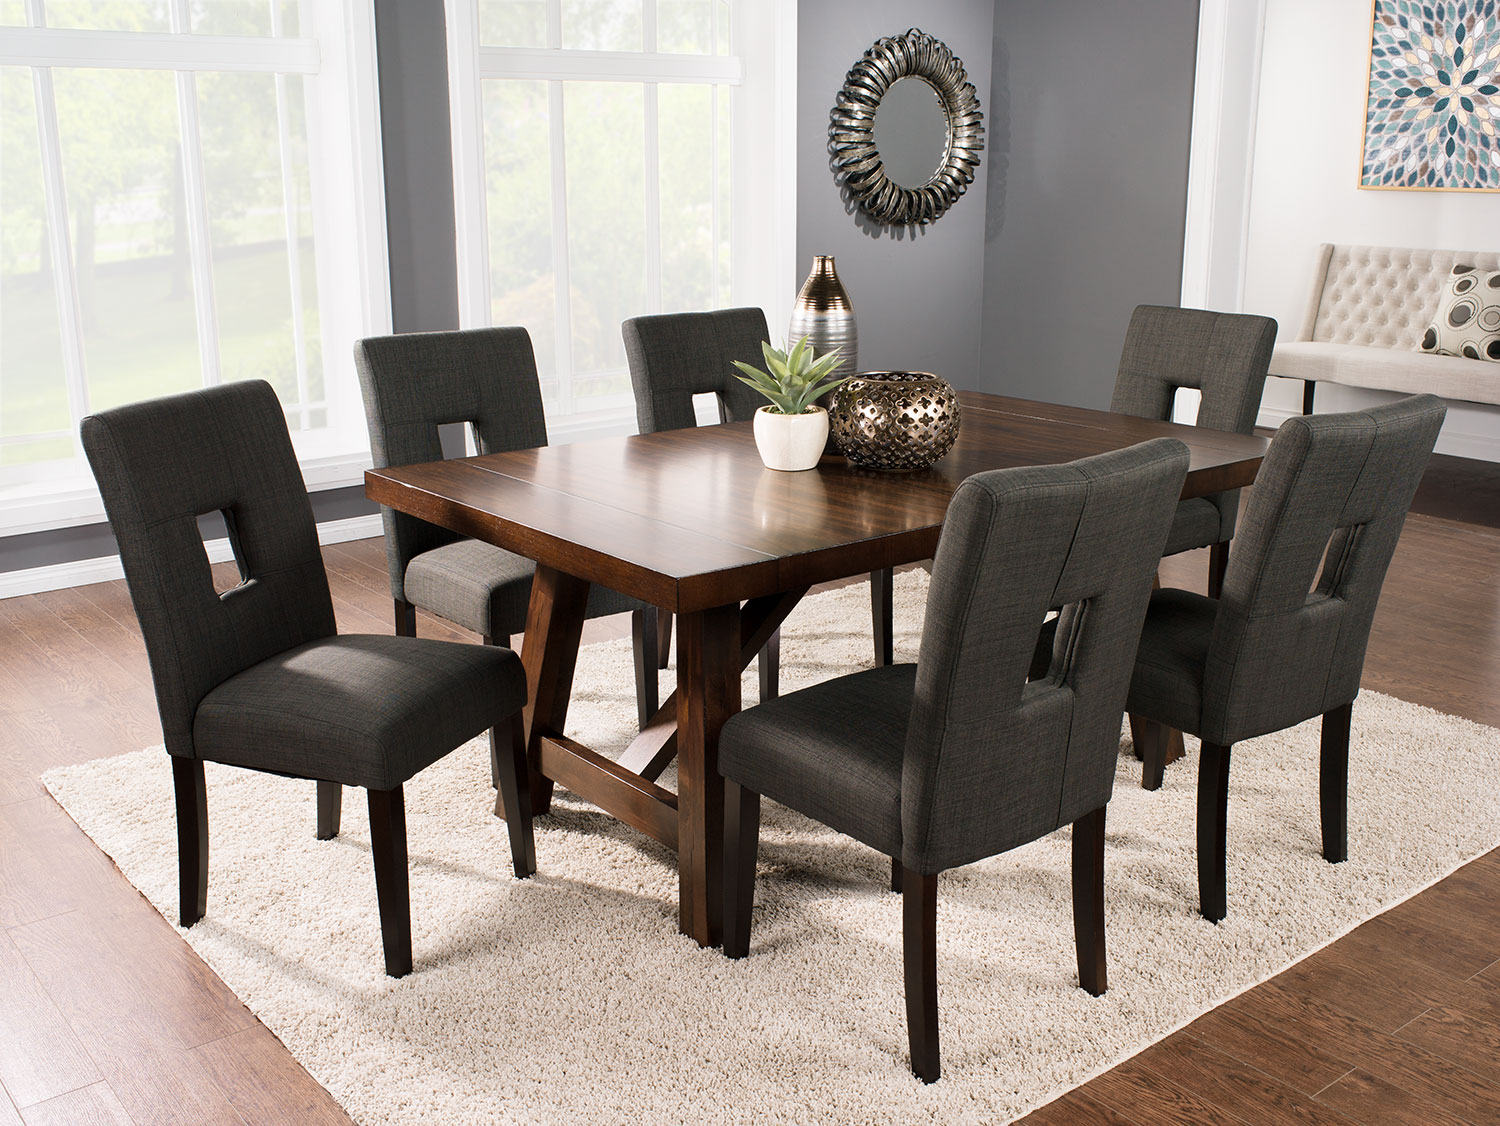 Adara 7-Piece Dining Package with McKena Chairs